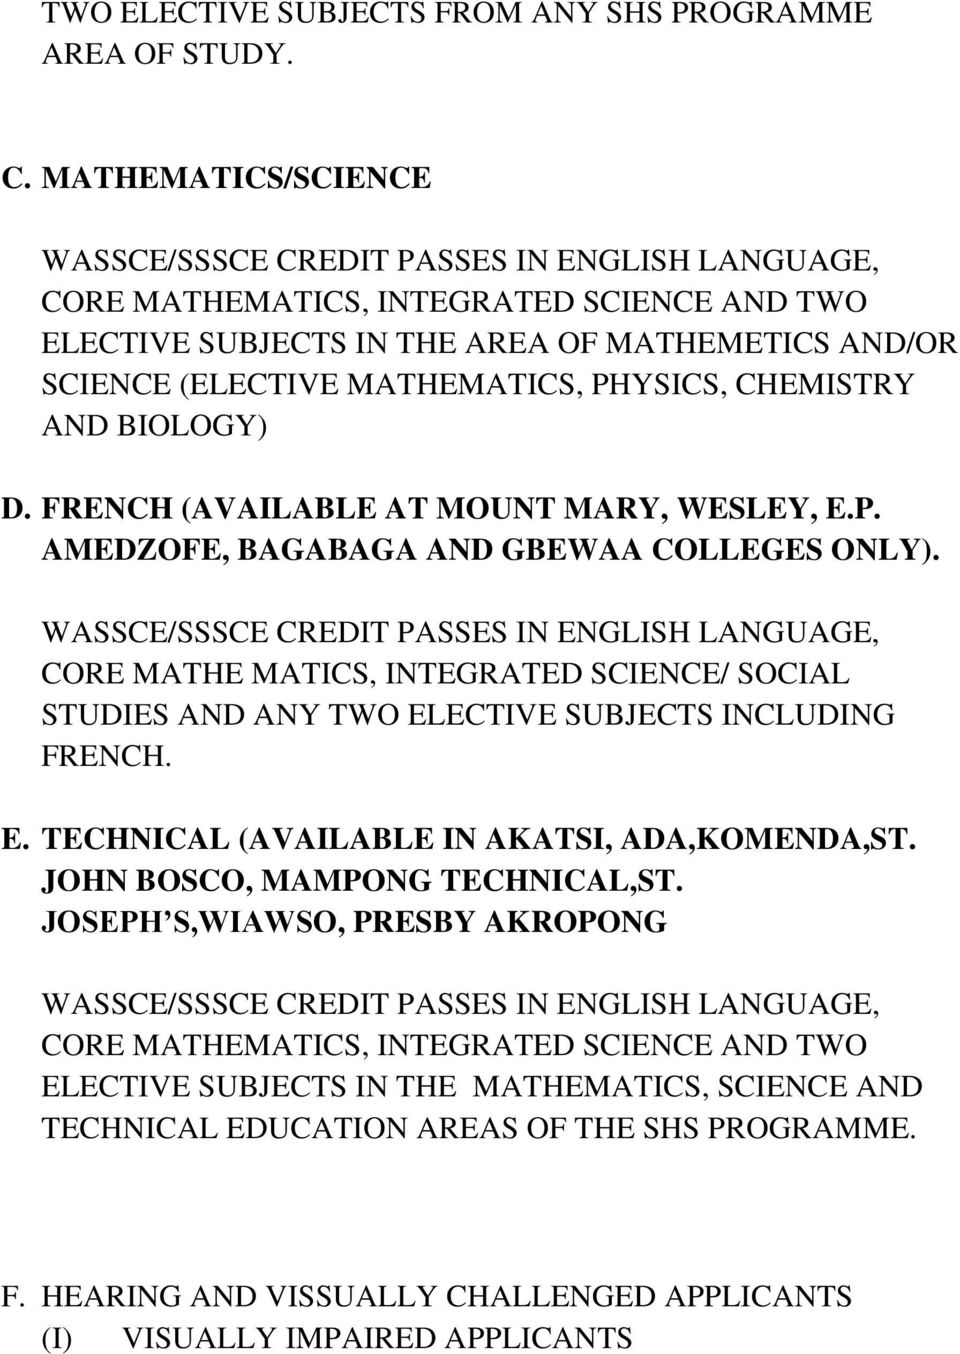 FRENCH (AVAILABLE AT MOUNT MARY, WESLEY, E.P. AMEDZOFE, BAGABAGA AND GBEWAA COLLEGES ONLY). CORE MATHE MATICS, INTEGRATED SCIENCE/ SOCIAL STUDIES AND ANY TWO ELECTIVE SUBJECTS INCLUDING FRENCH.